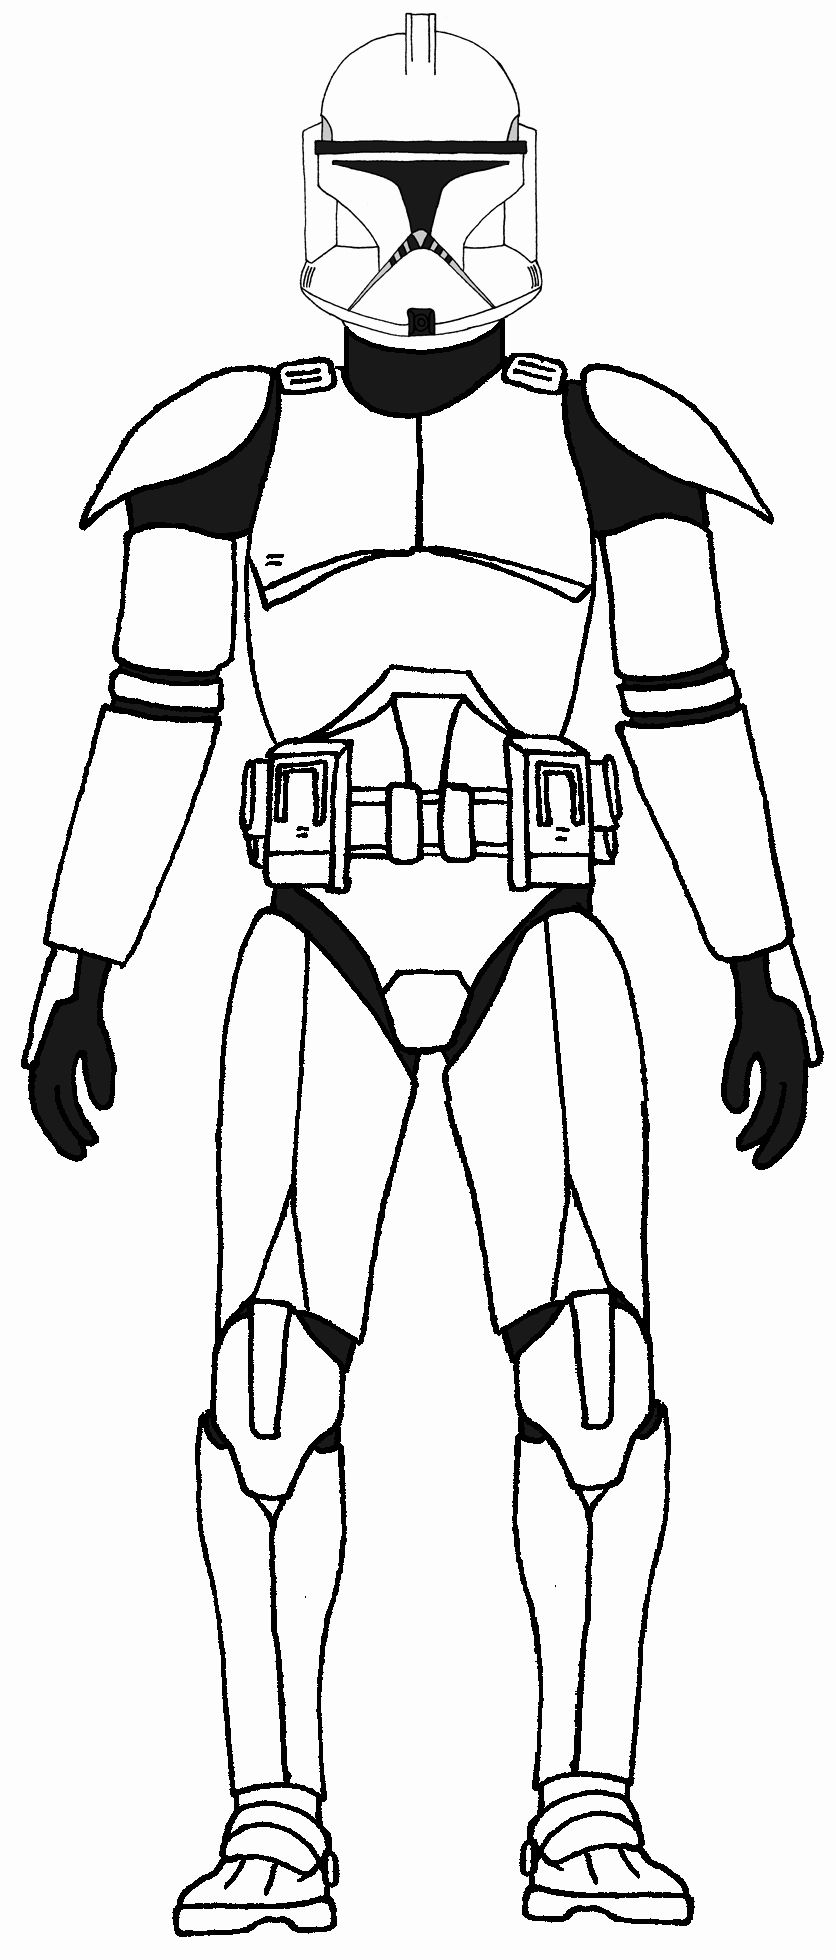 Clone Trooper Coloring Page Beautiful M Phase 2 Clone Trooper Coloring Pages Coloring Pages In 2020 Star Wars Clone Wars Star Wars Pictures Star Wars Trooper